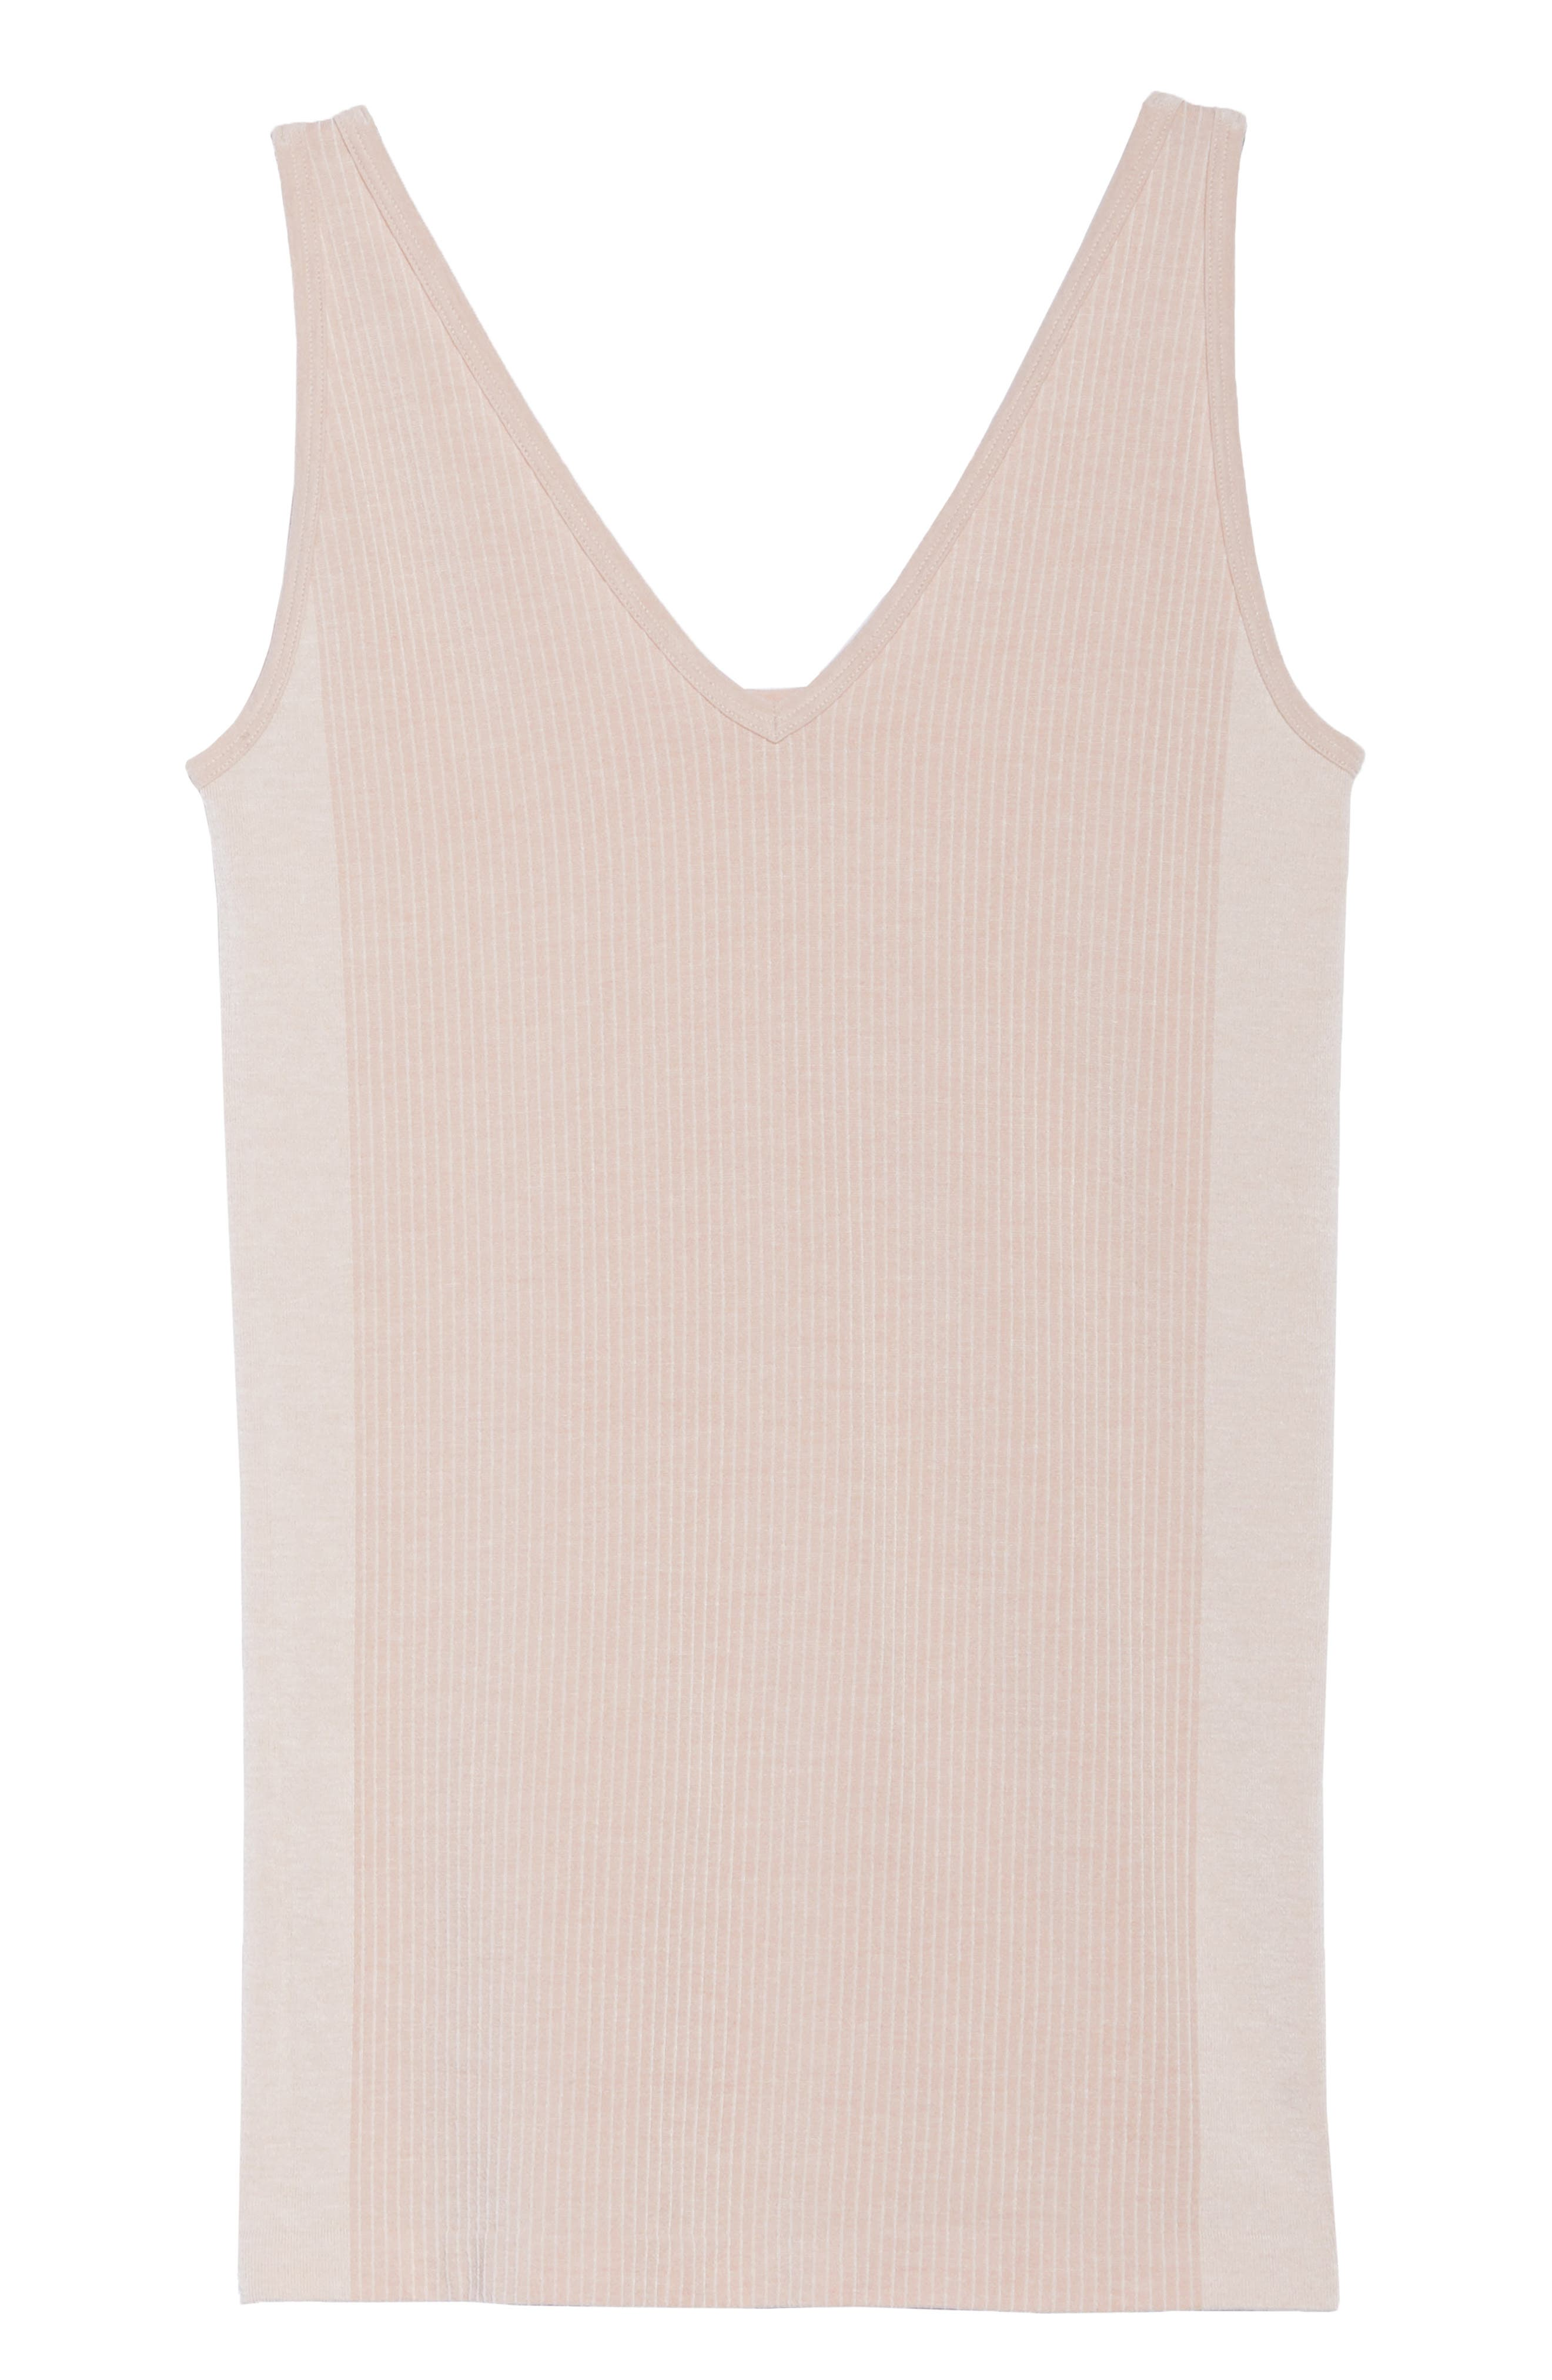 Laidback Layers Two-Way Seamless Tank,                             Alternate thumbnail 7, color,                             Pink Cashmere